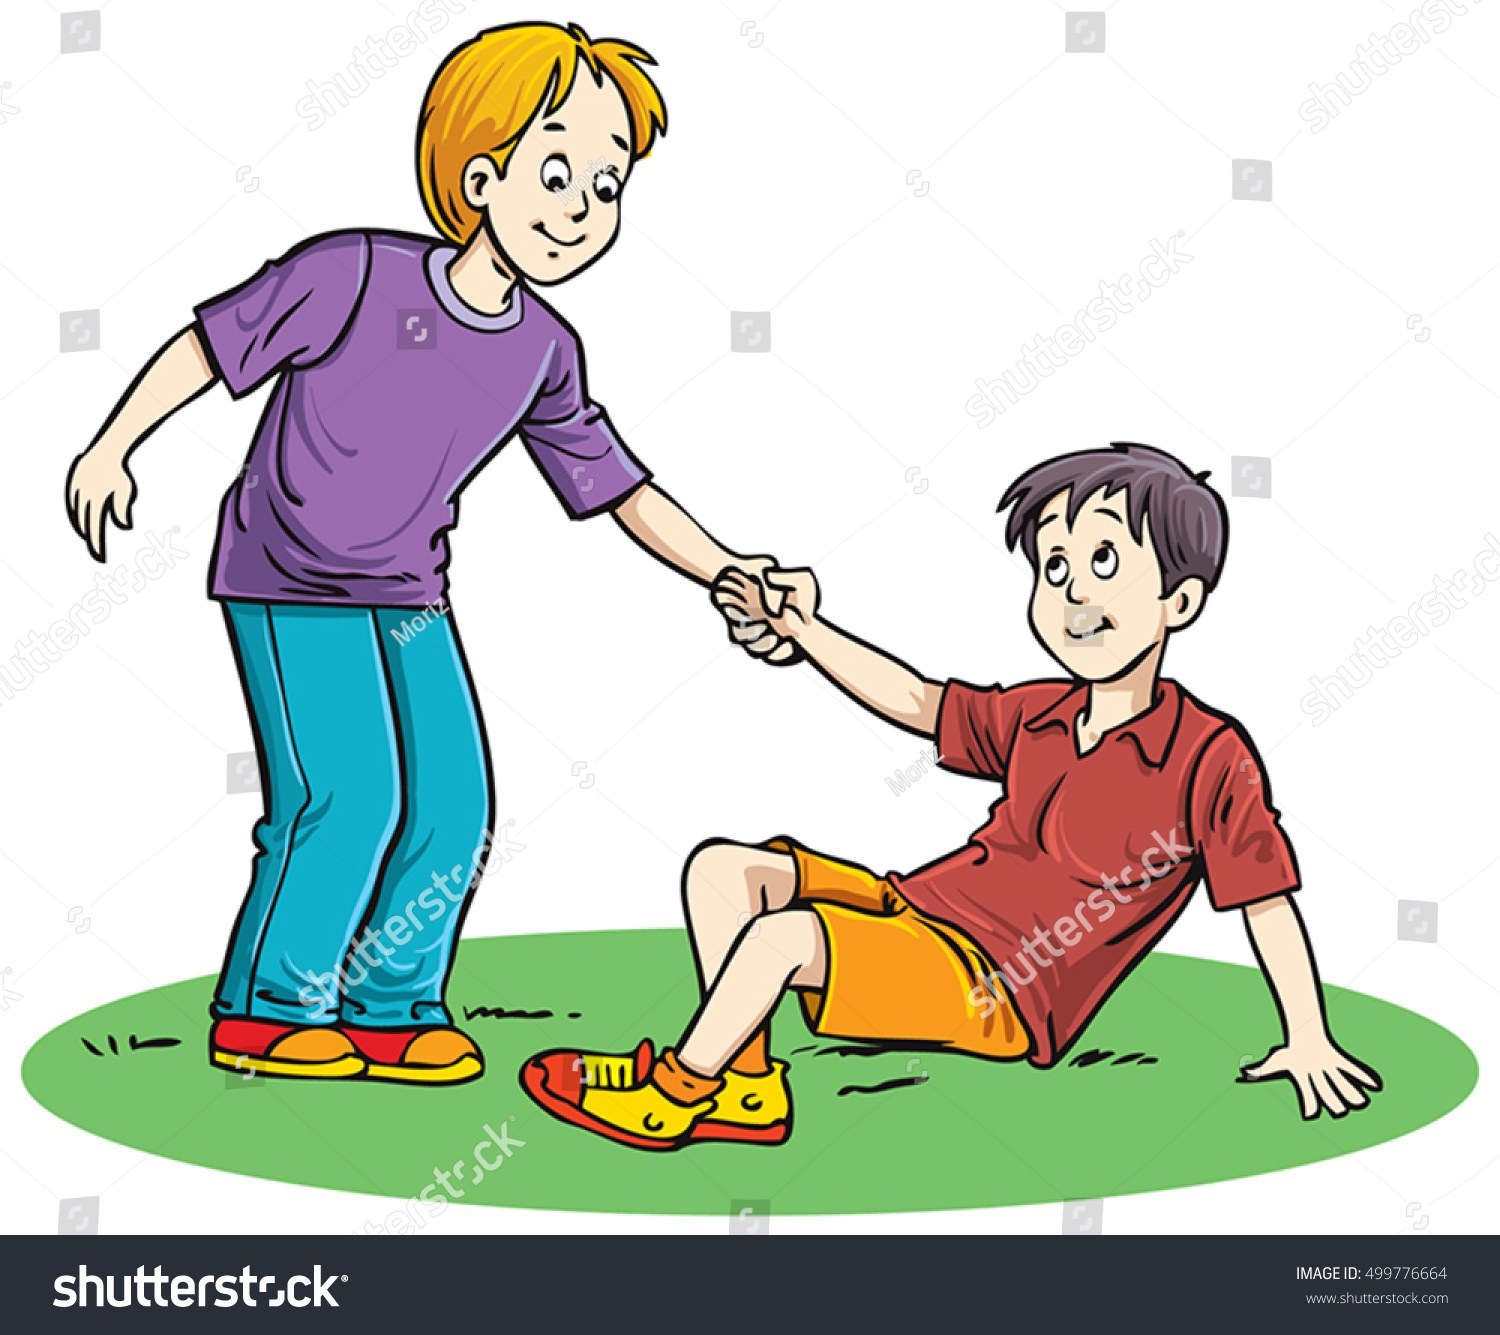 Clipart helping graphic free download Boy helping clipart 8 » Clipart Portal graphic free download